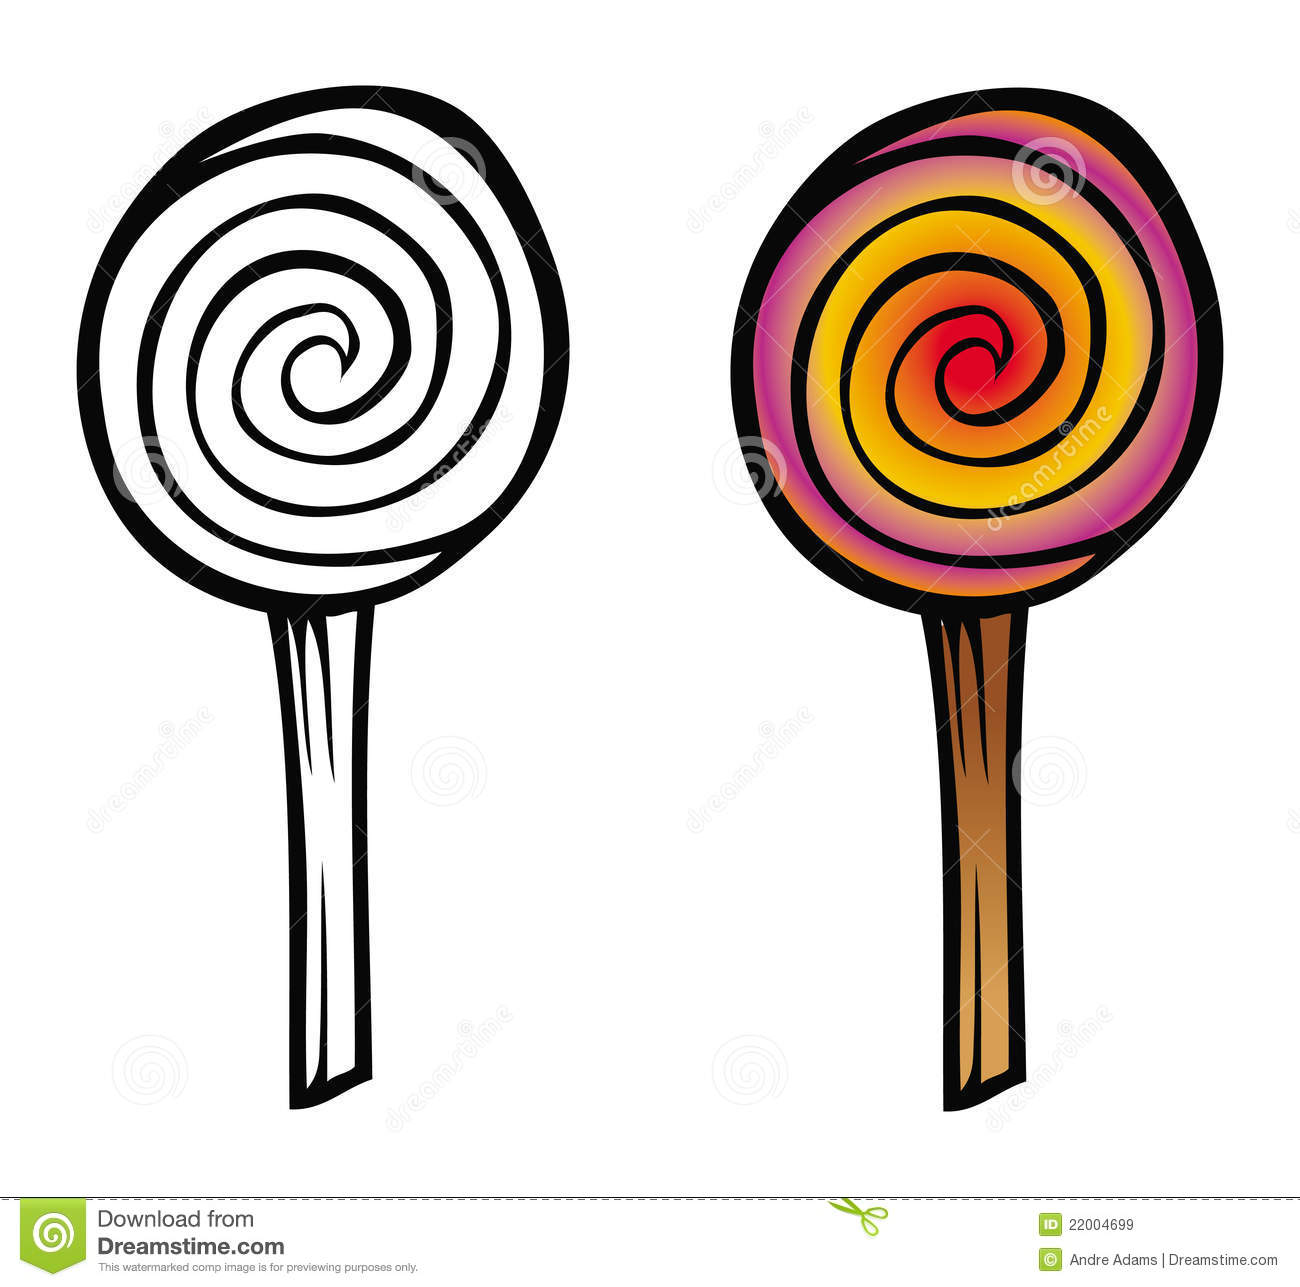 Cartoon illustration of a lollipop coloring book.